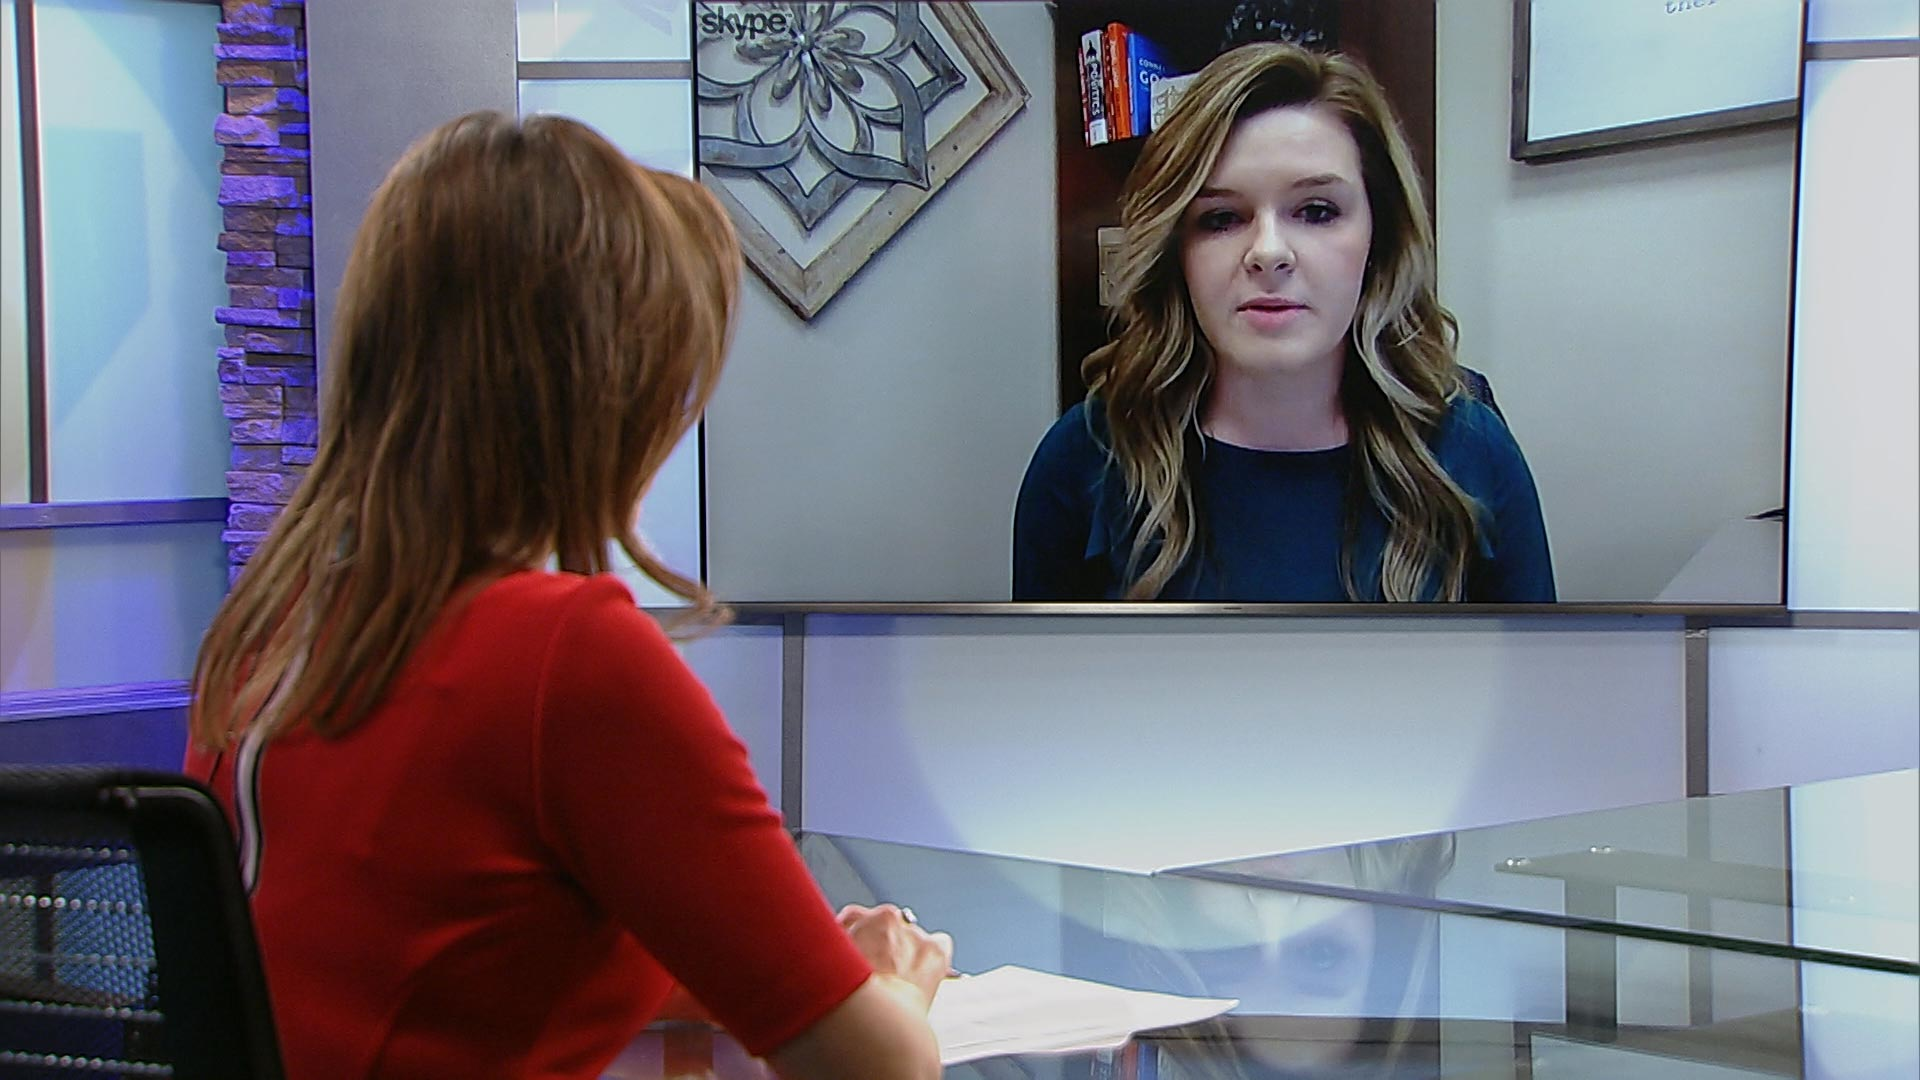 Briana Johnson with the Center for Arizona Policy speaks to Lorraine Rivera in the Arizona 360 studio via Skype on February 6, 2019.